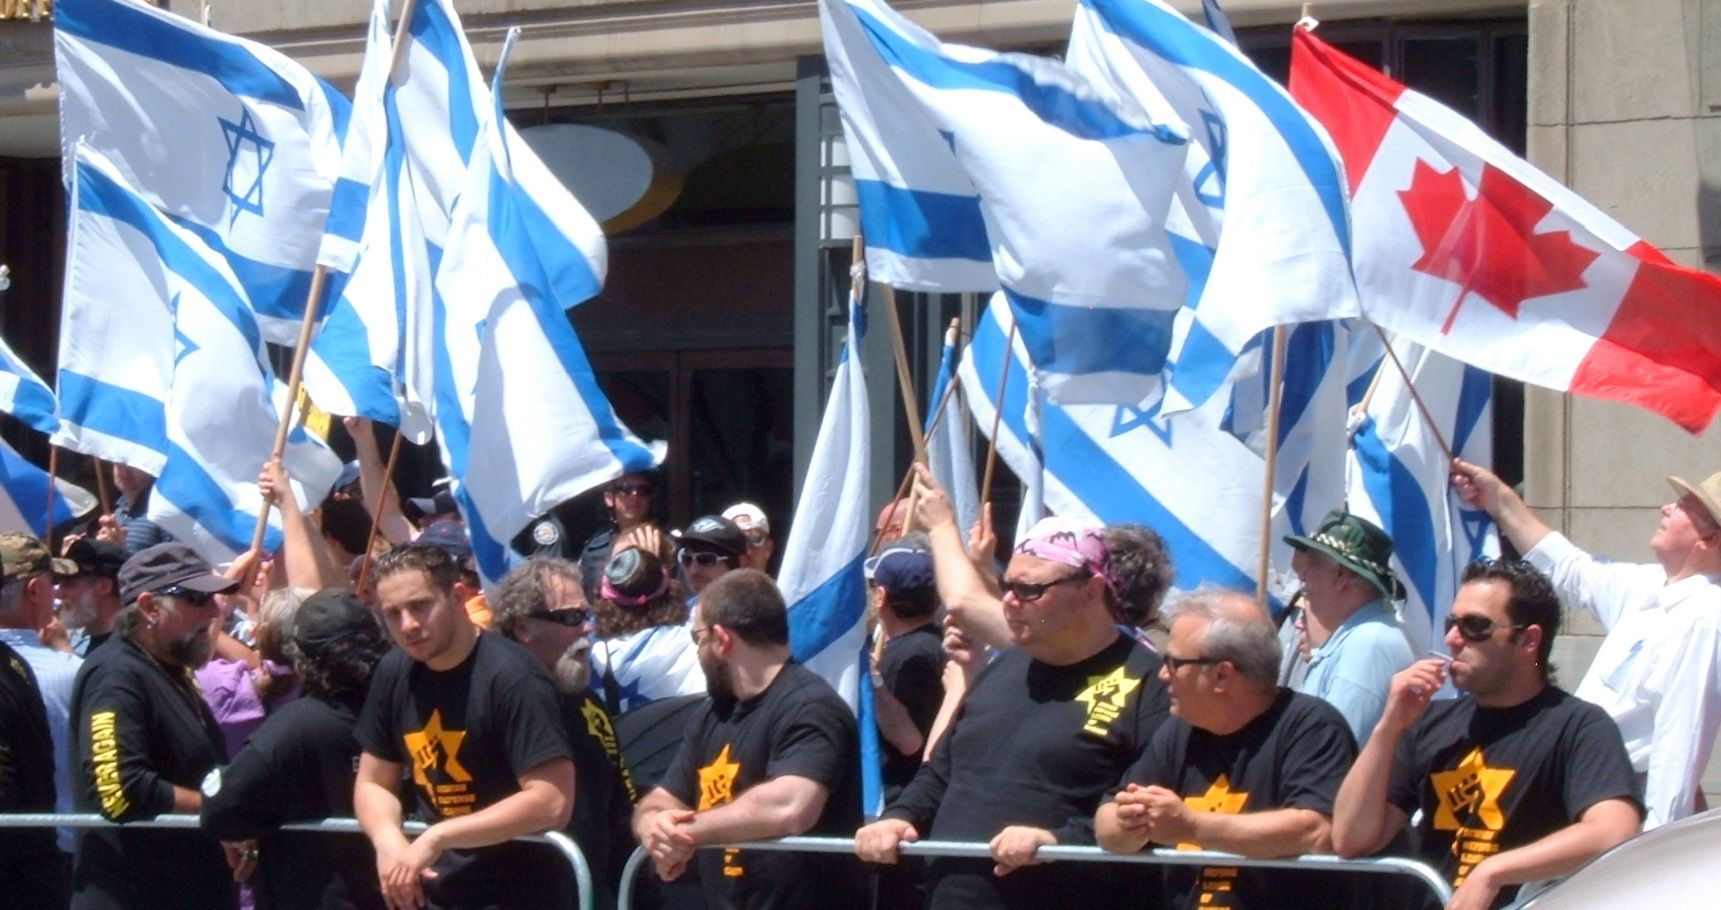 10 Of The World's Most Notorious Hate Groups